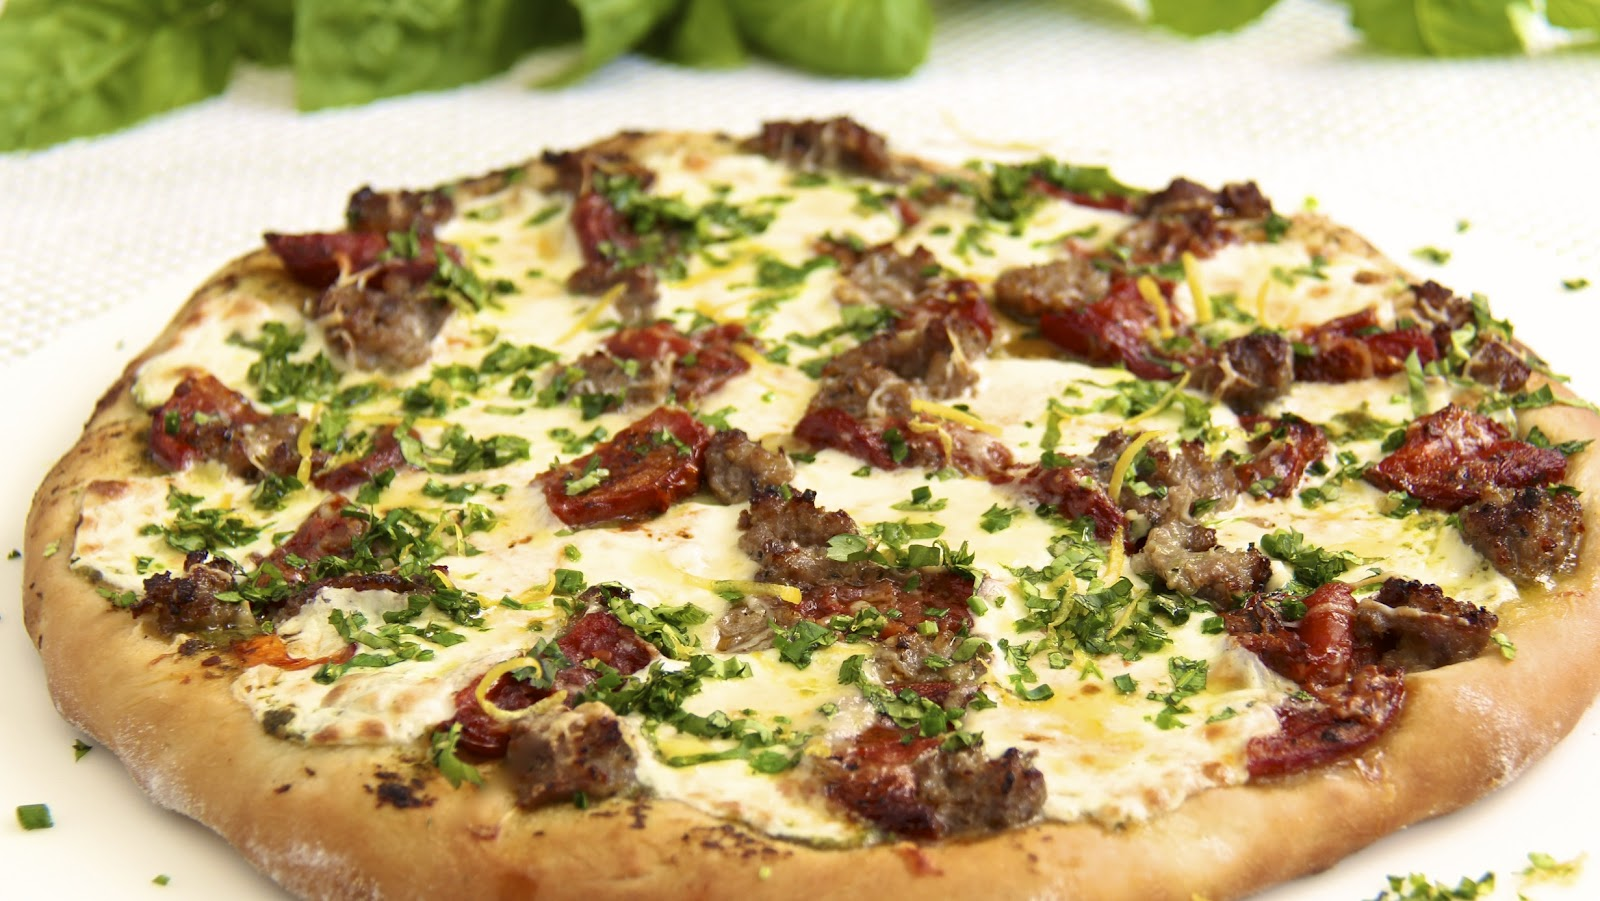 Pesto Pizza w/ Italian Sausage, Slow-Roasted Tomatoes & Spring Herb ...